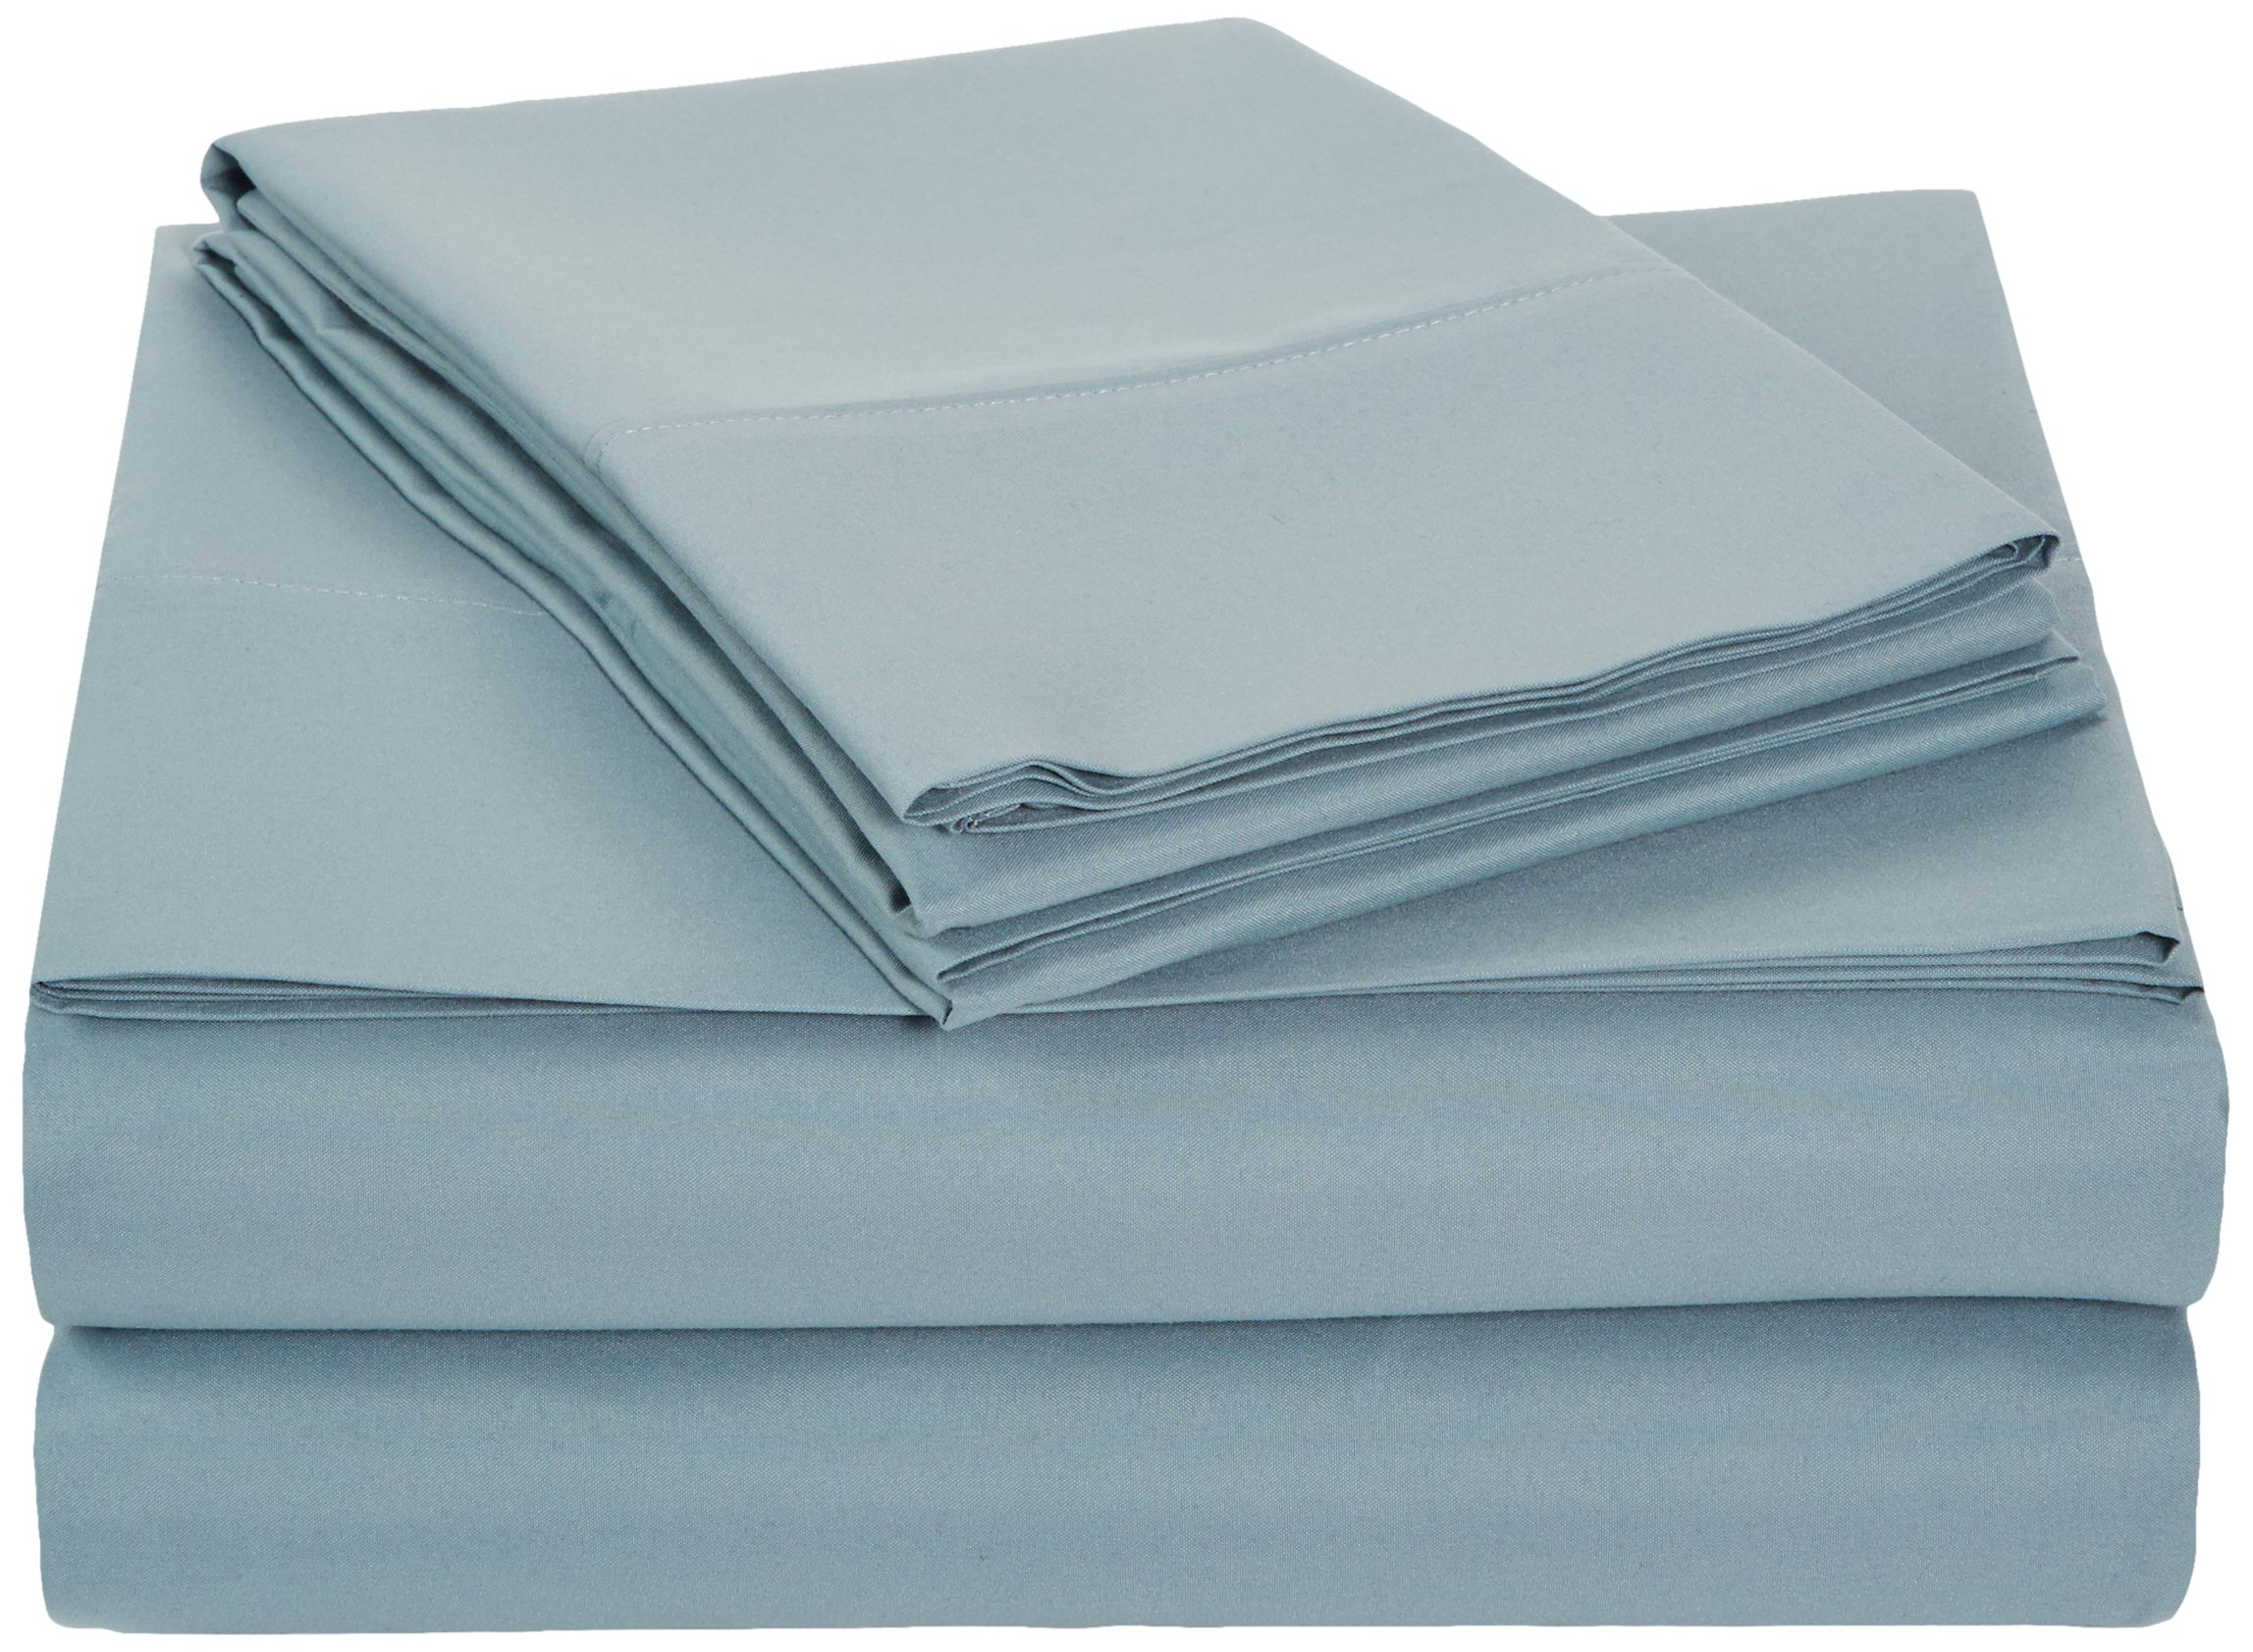 AmazonBasics Microfiber Sheet Set - Full, Spa Blue by AmazonBasics (Image #1)